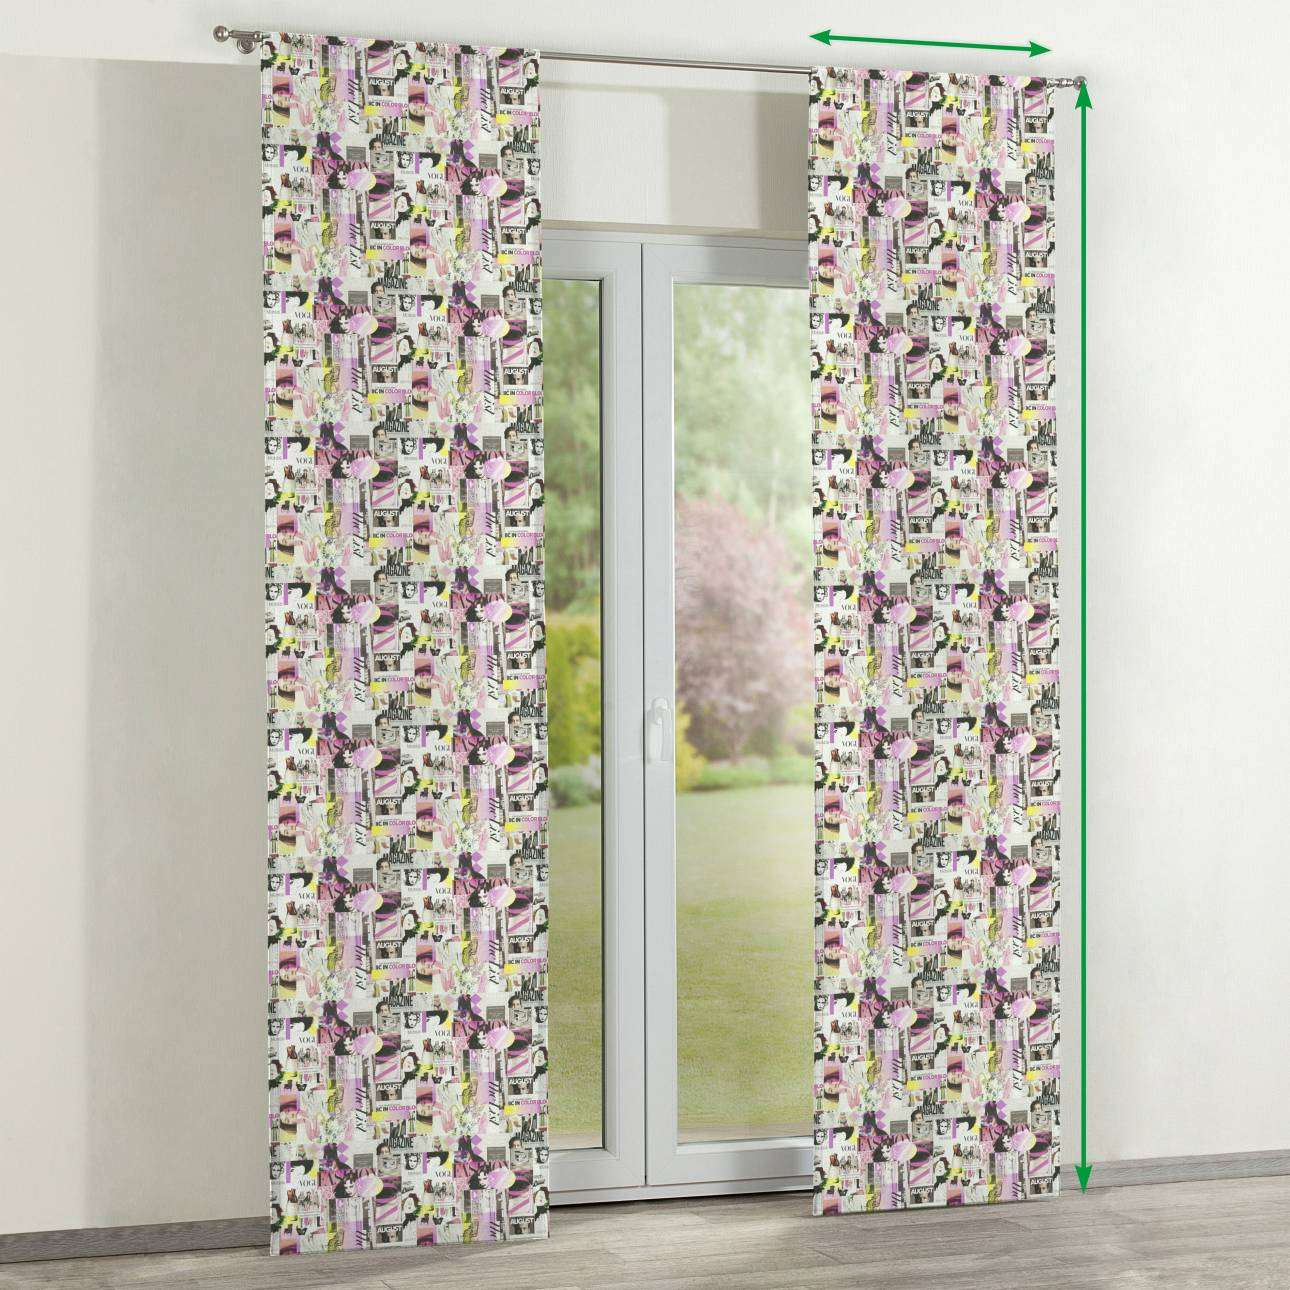 Slot panel curtains – Set of 2 in collection Freestyle, fabric: 135-15